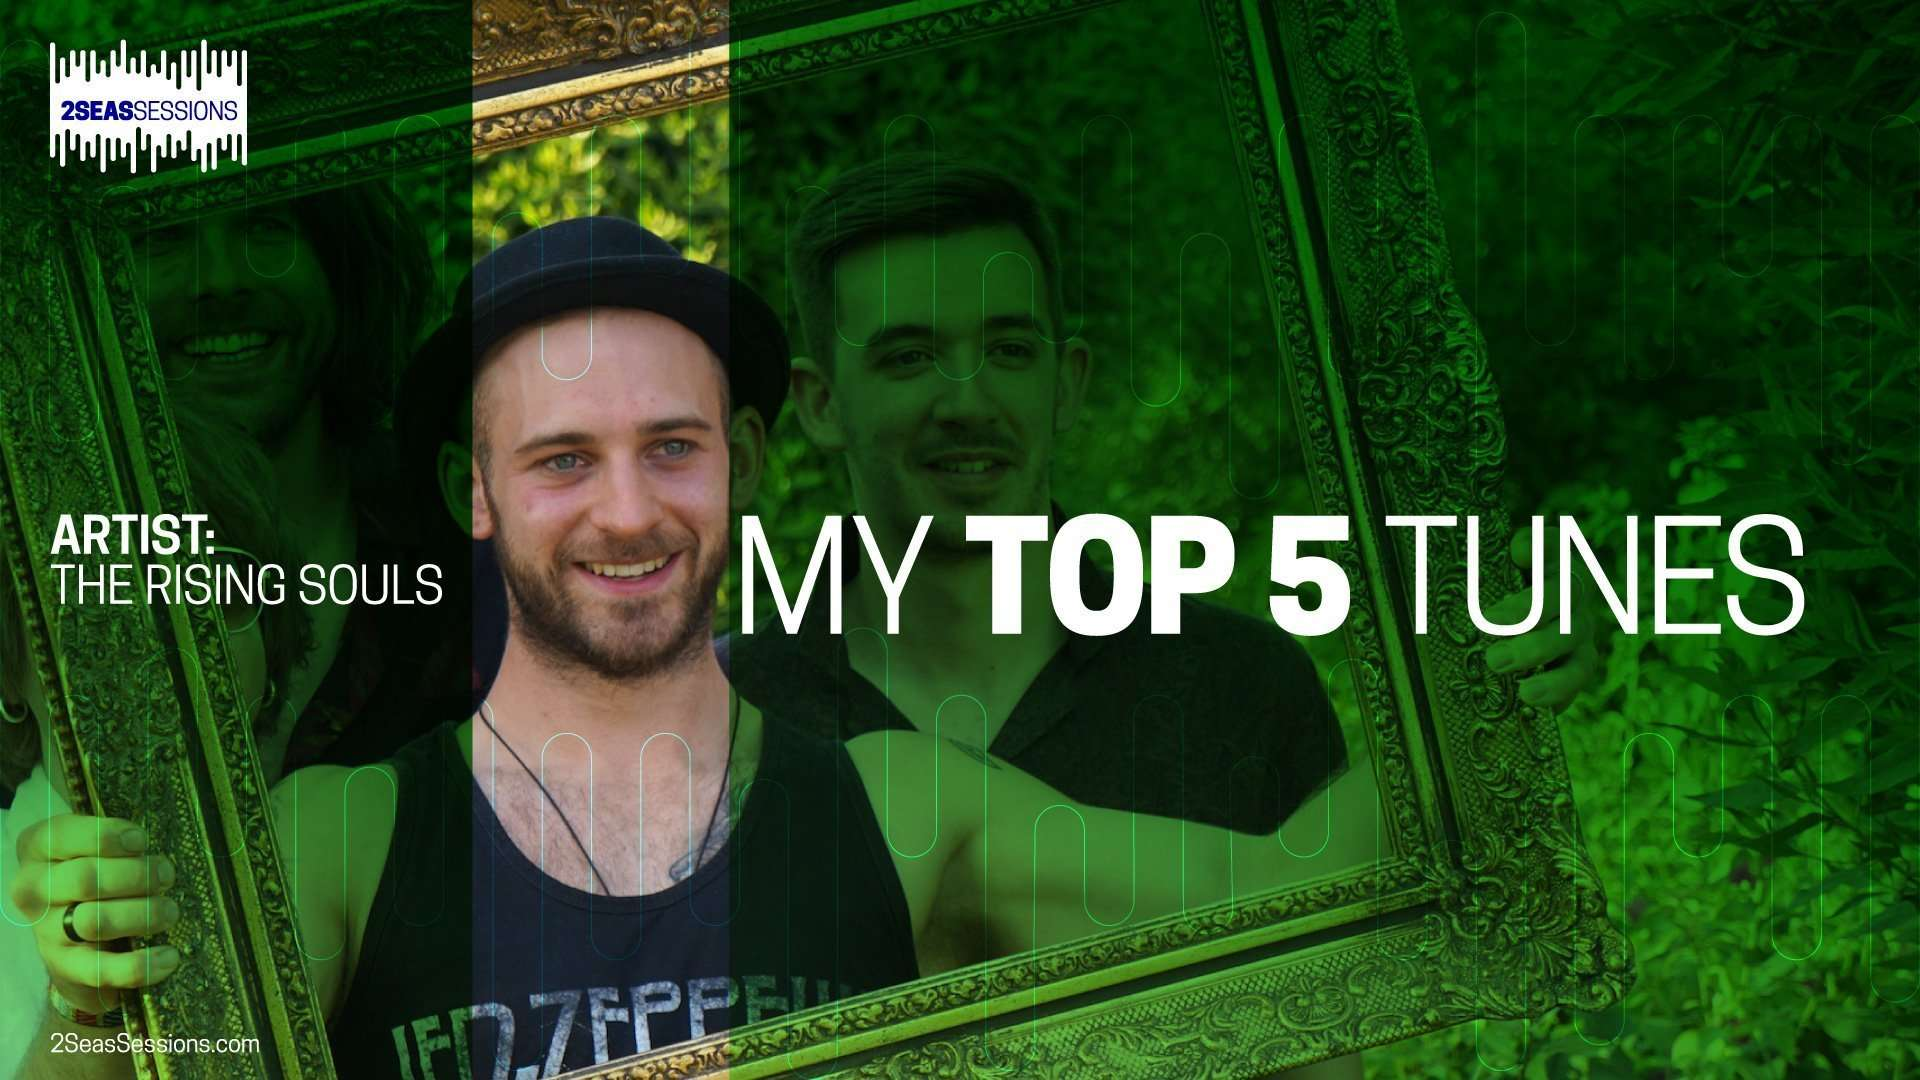 2SeasSessions - My Top 5 Tunes: The Rising Souls